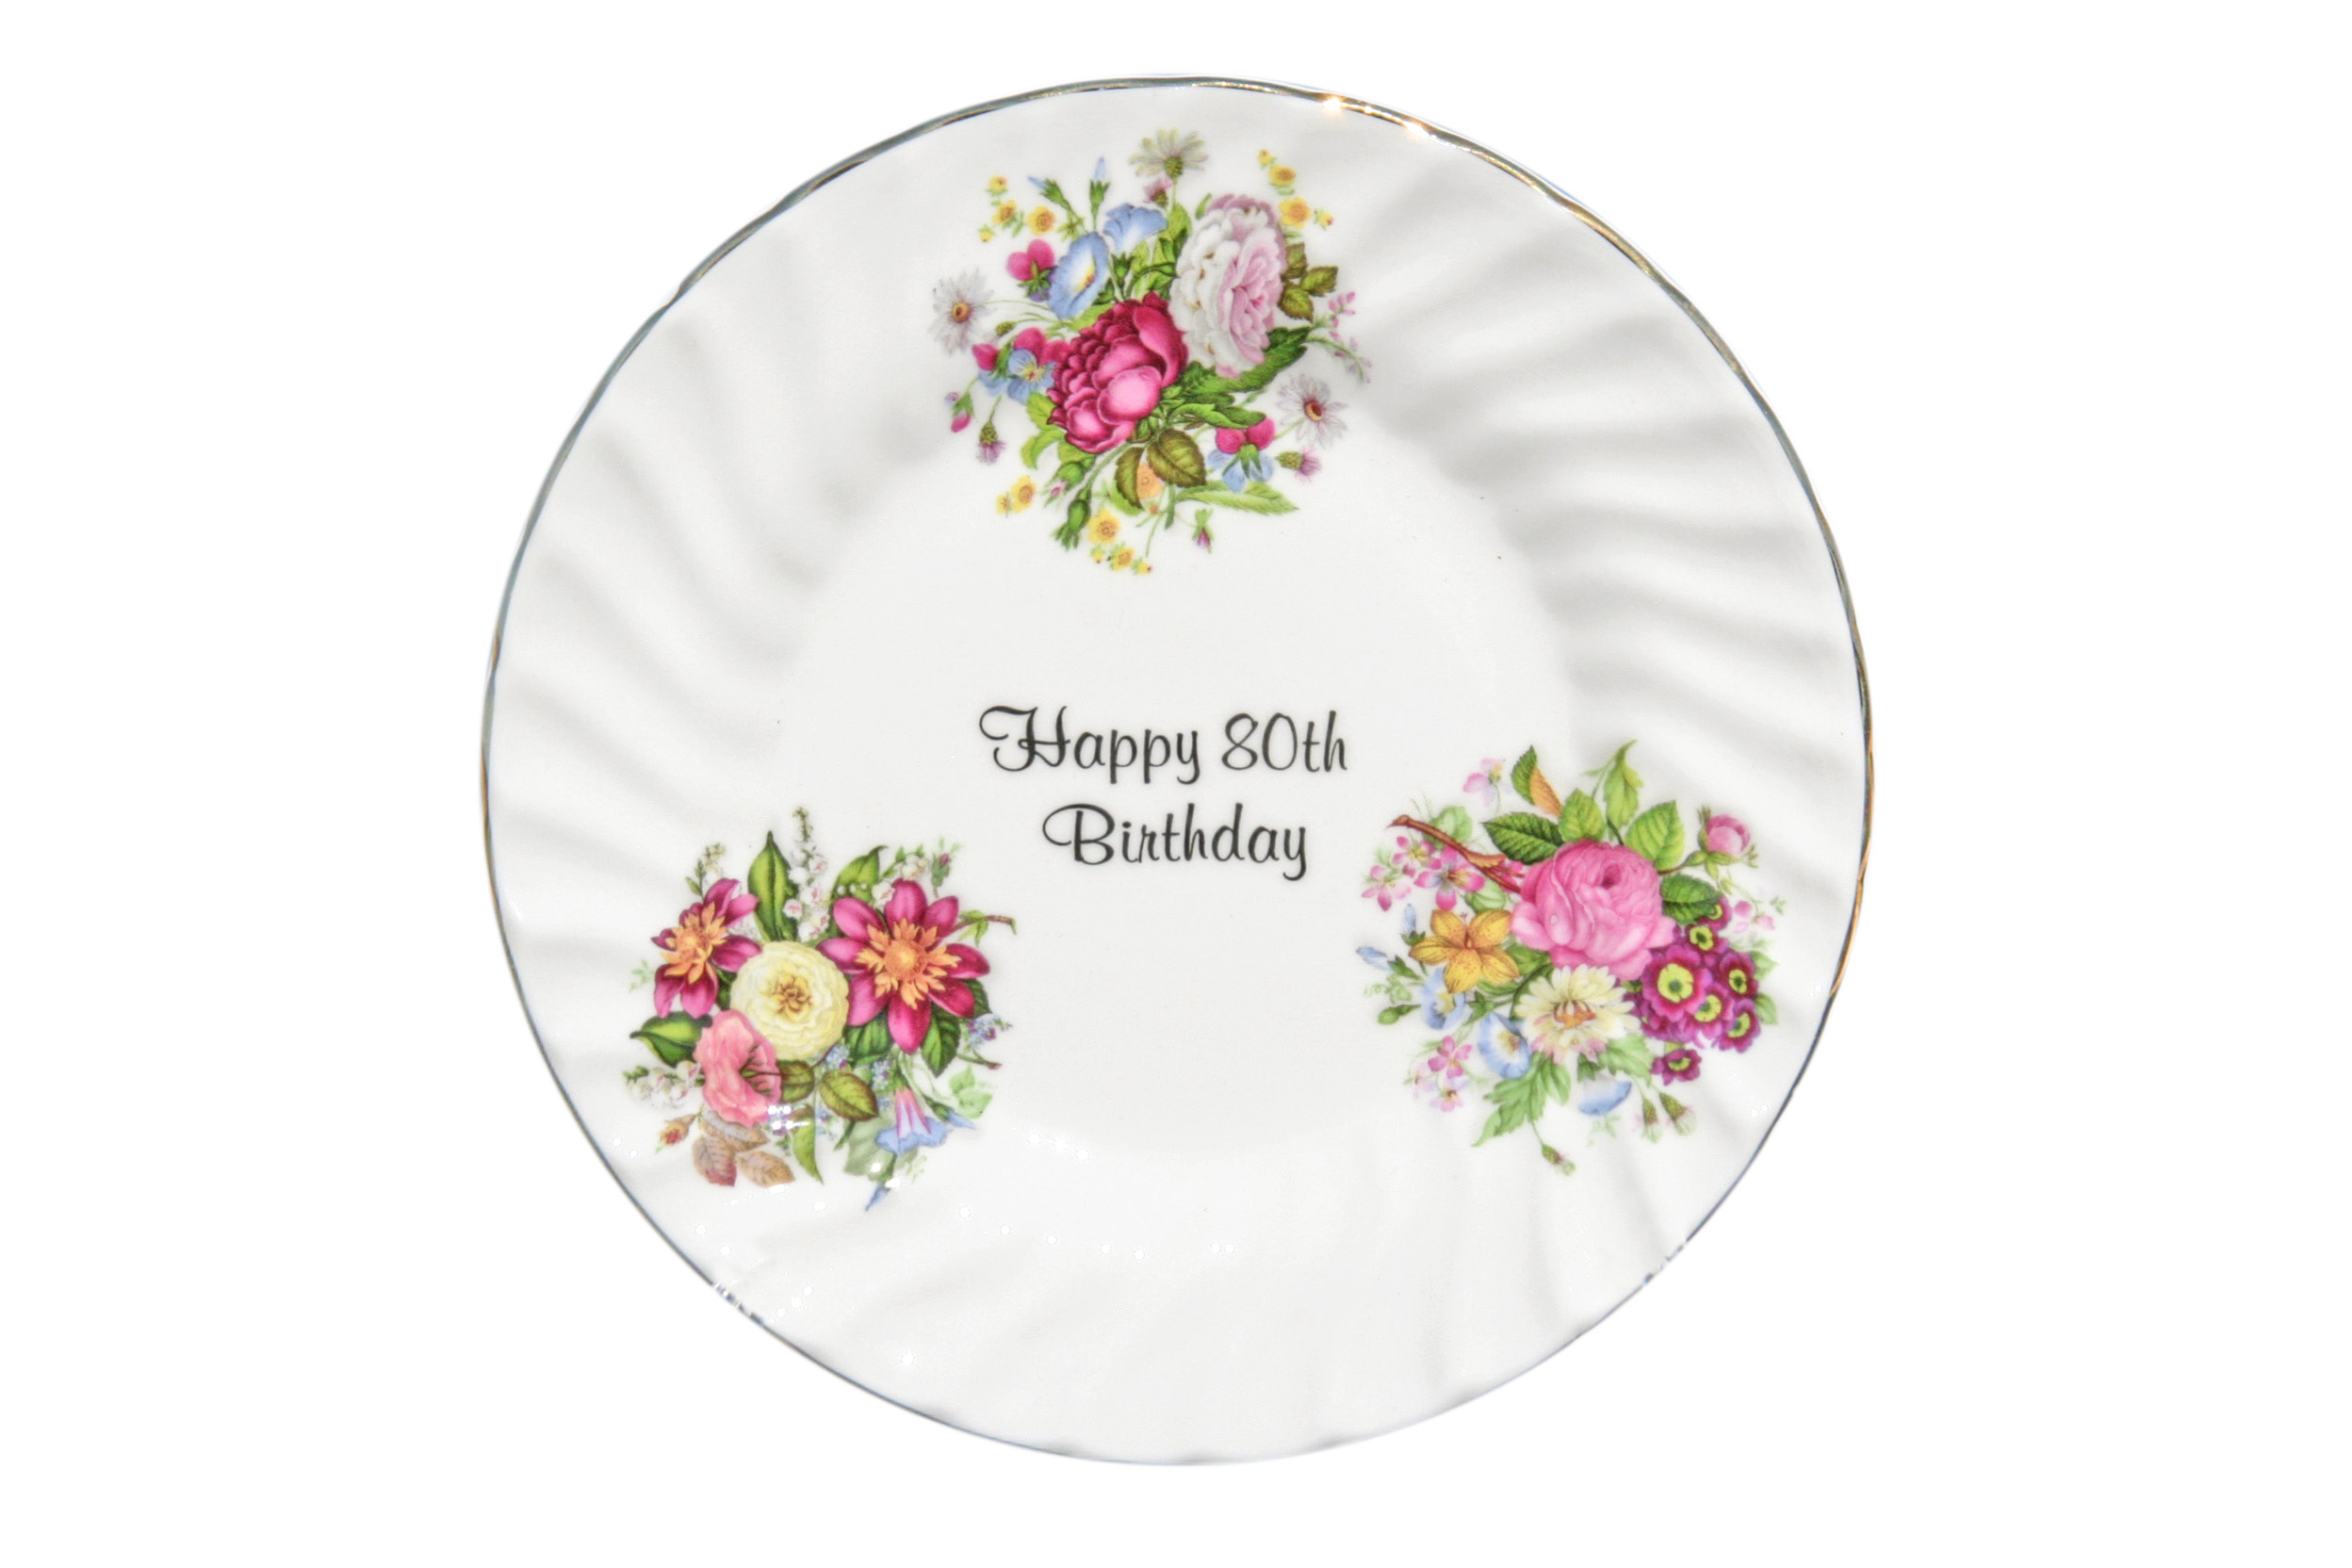 80th Birthday Cake/Display Plate